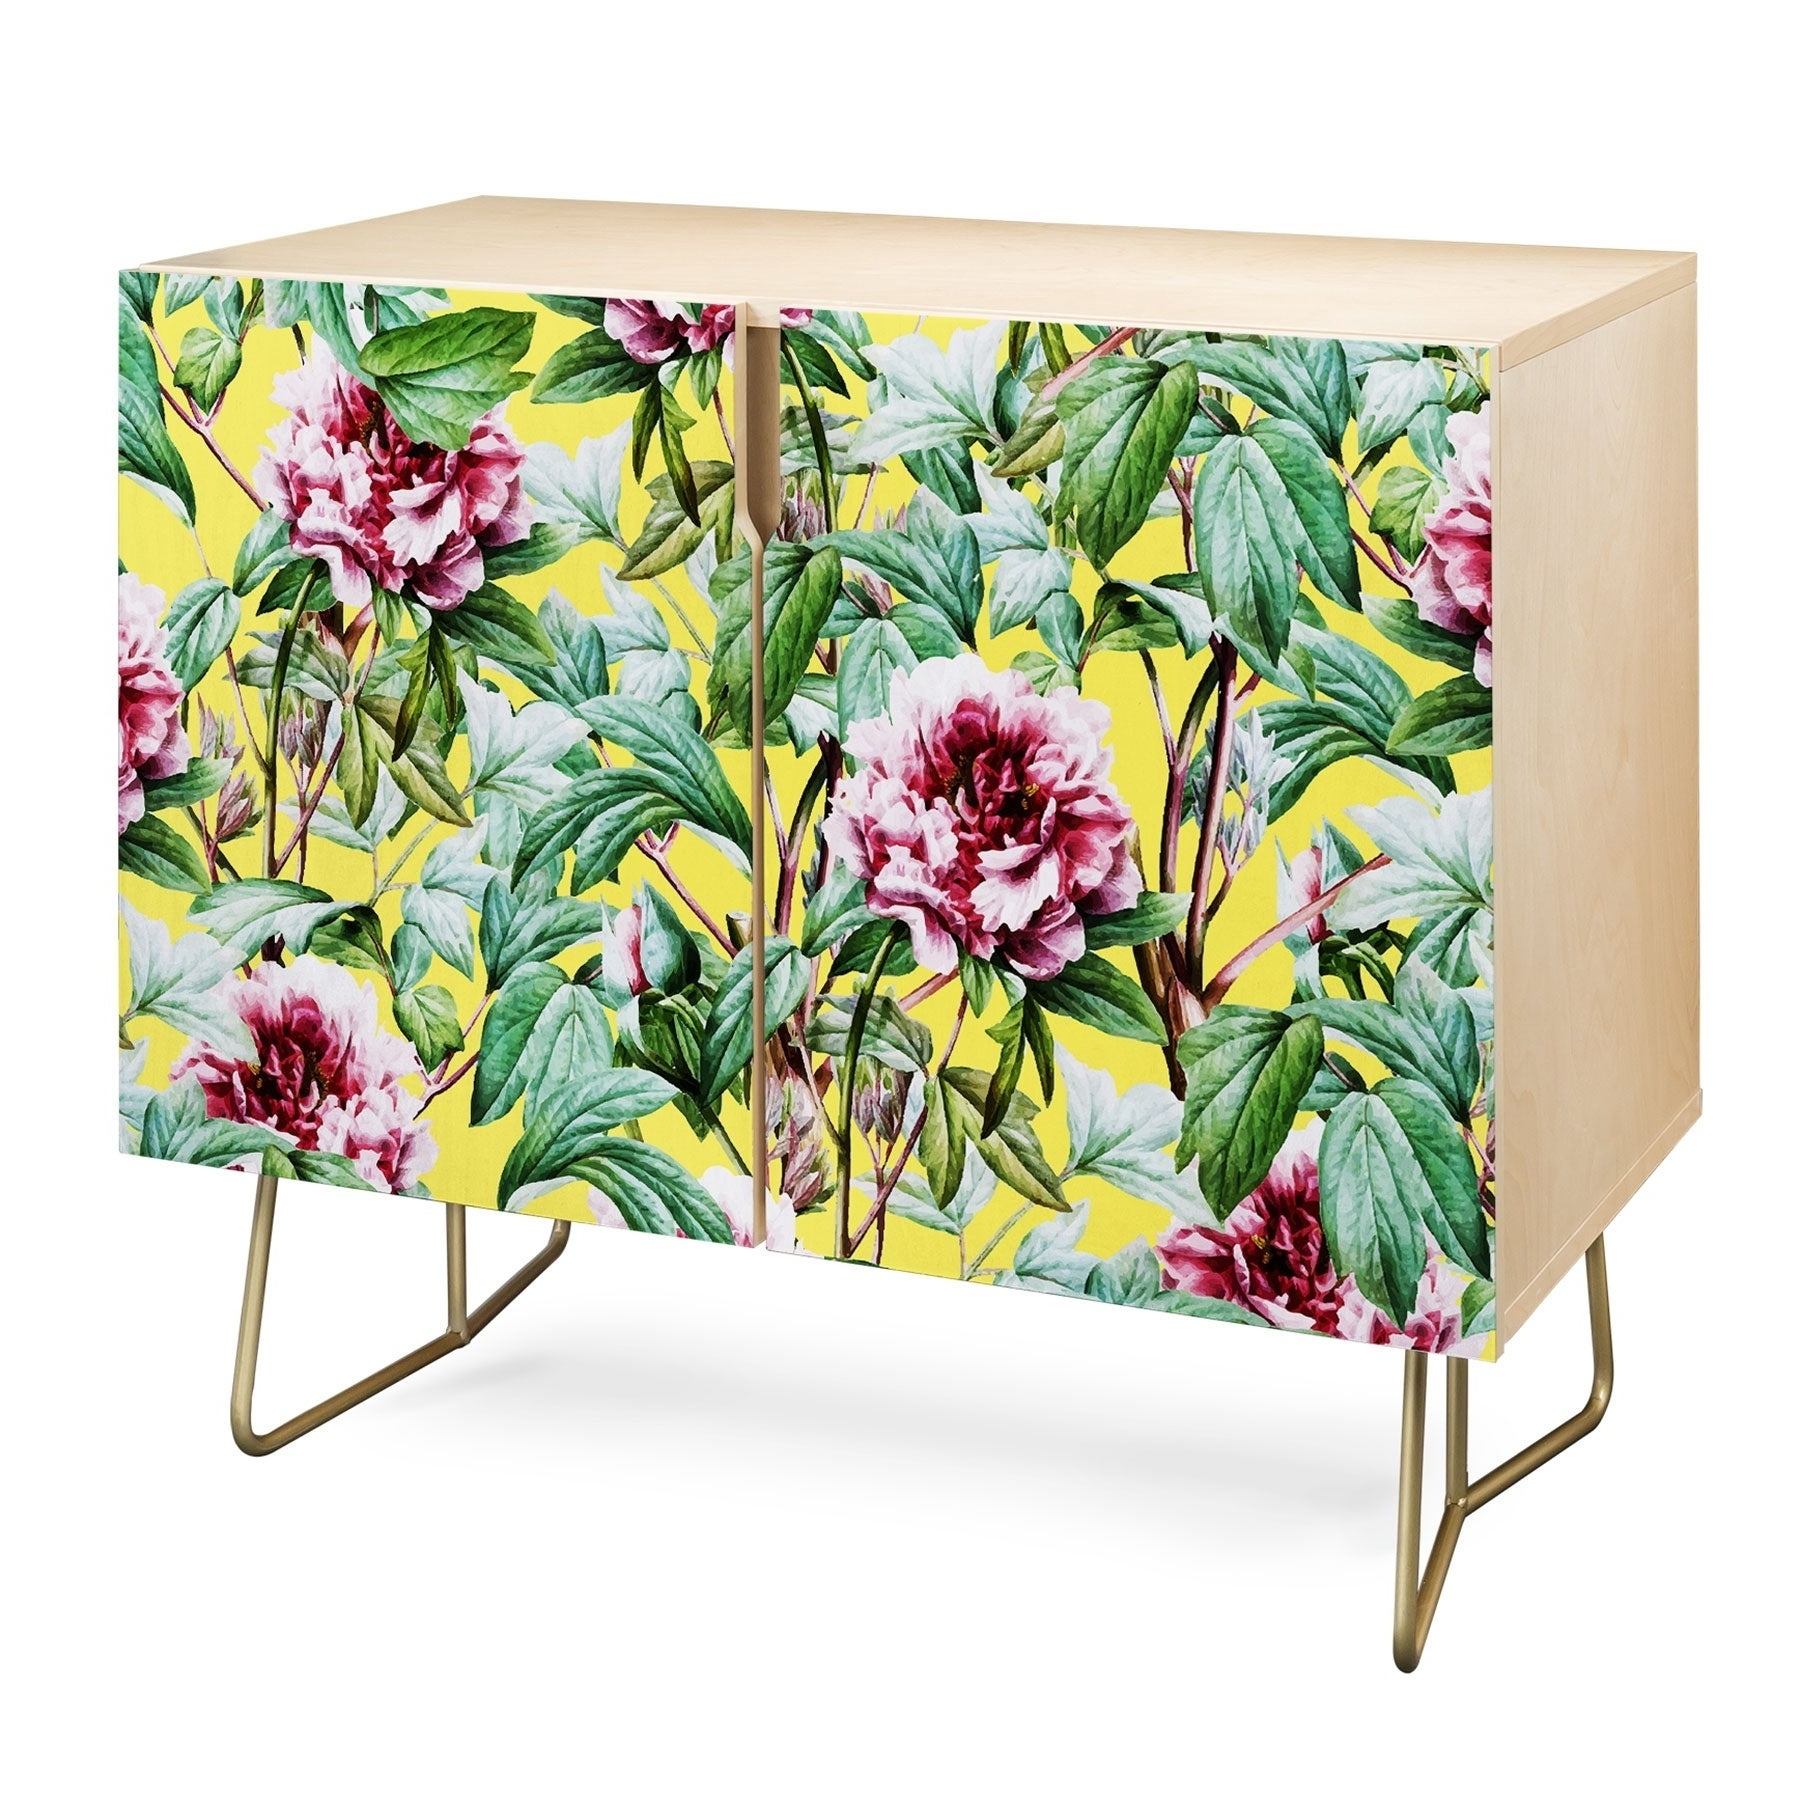 Deny Designs Yellow Flora Credenza (Birch Or Walnut, 2 Leg Options) Throughout Floral Blush Yellow Credenzas (View 14 of 20)